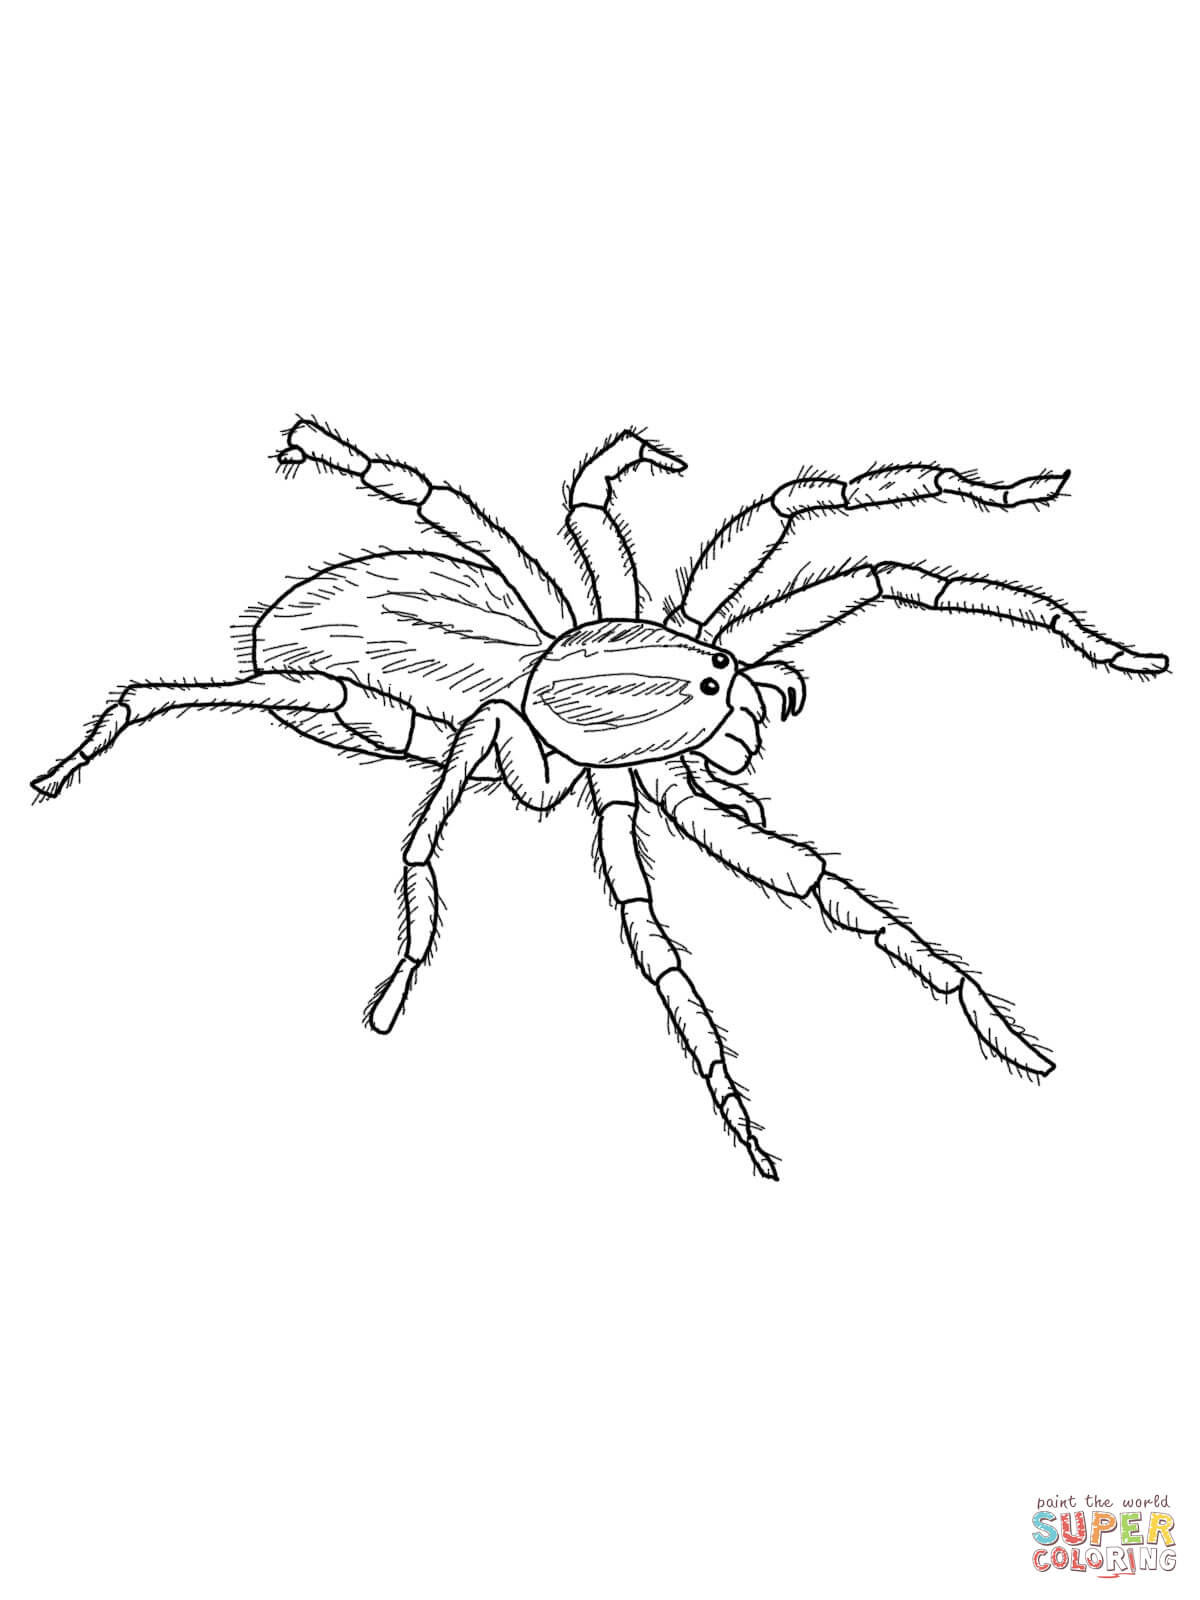 Redback Spider coloring #12, Download drawings